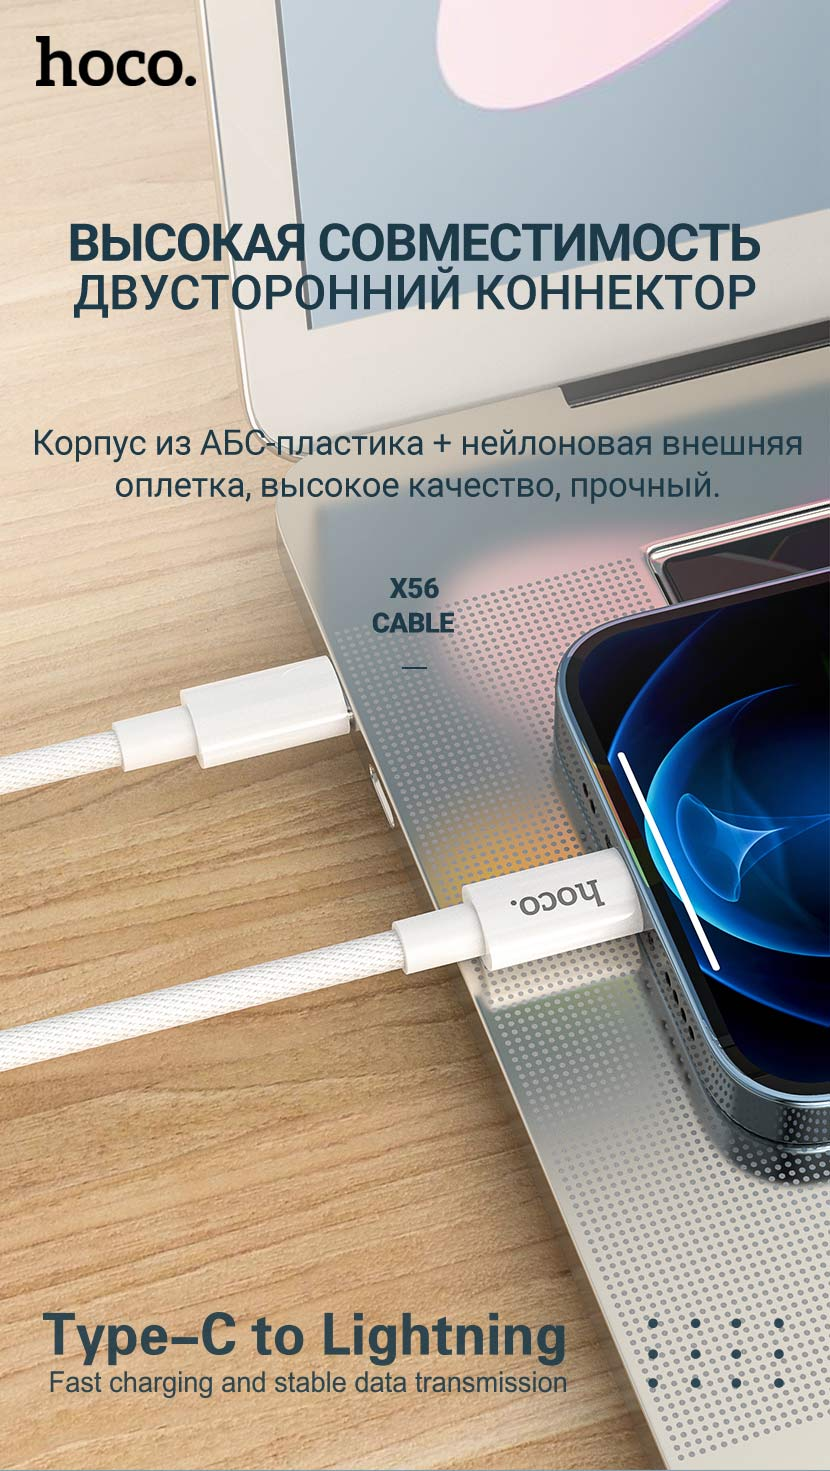 hoco news x56 new original pd charging data cable lightning compatibility ru